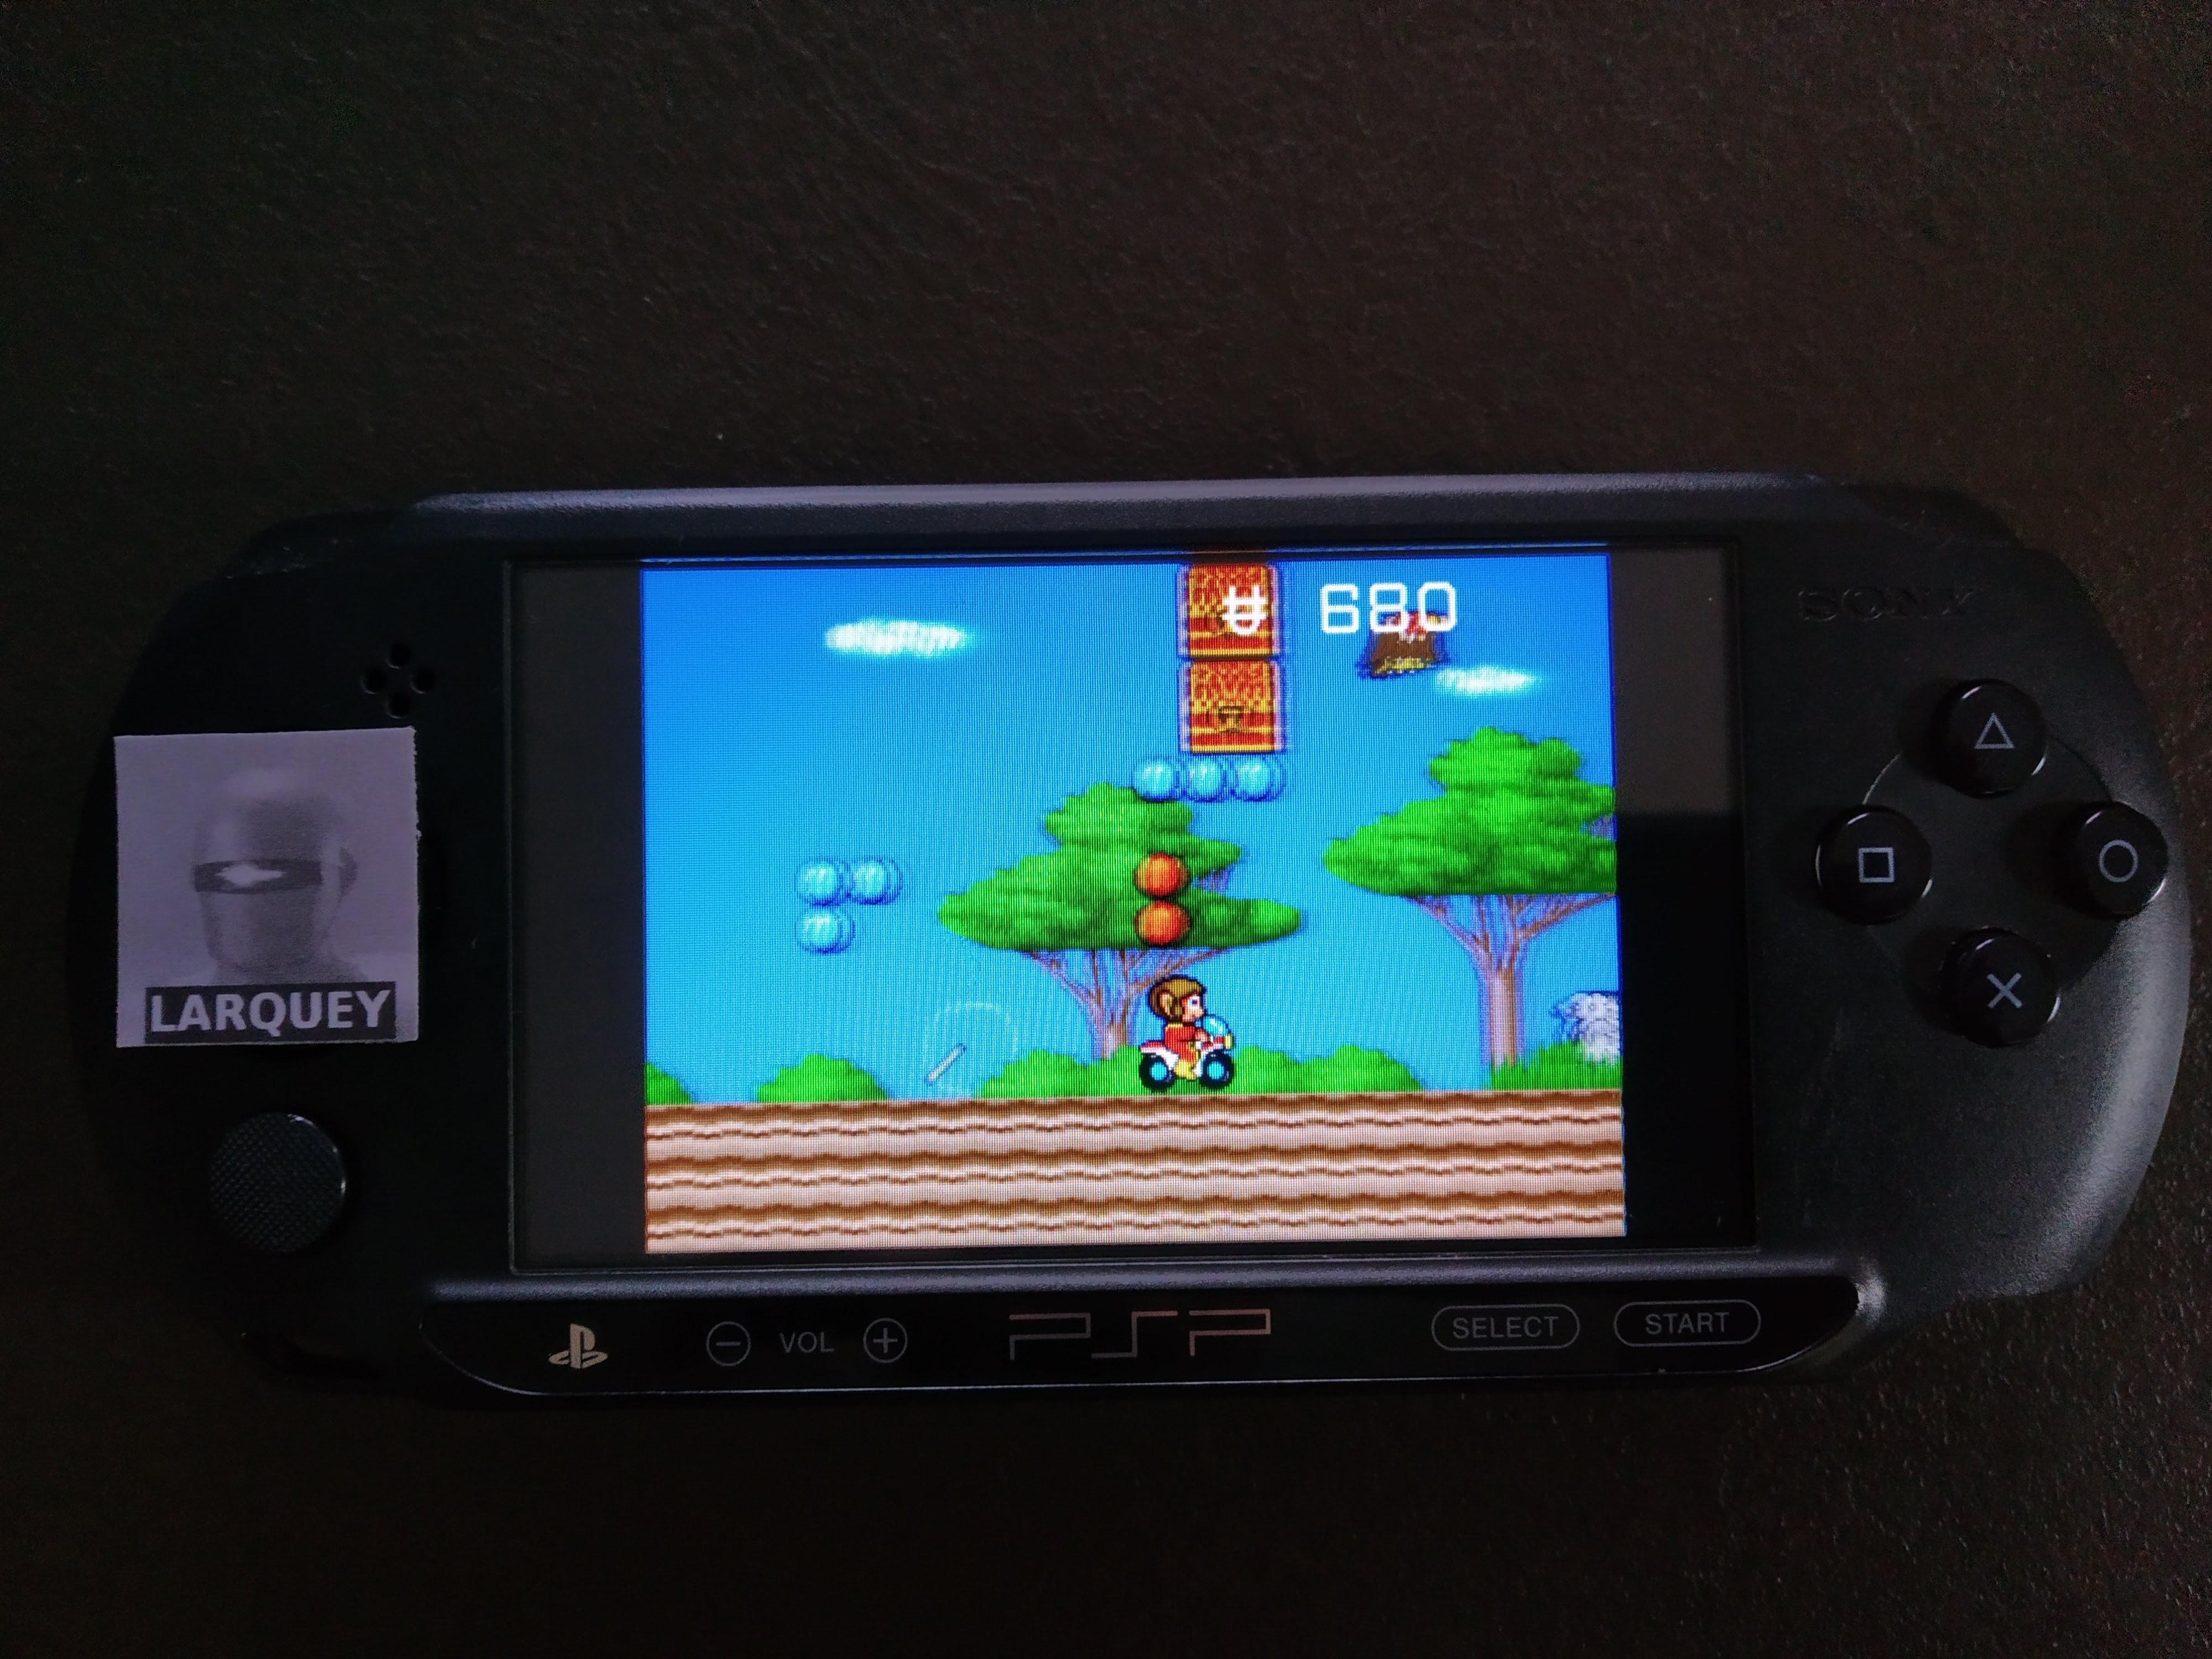 Larquey: Sega Genesis/Mega Drive Collection: Alex Kidd In The Enchanted Castle [Easy] (PSP) 680 points on 2019-12-27 02:19:26